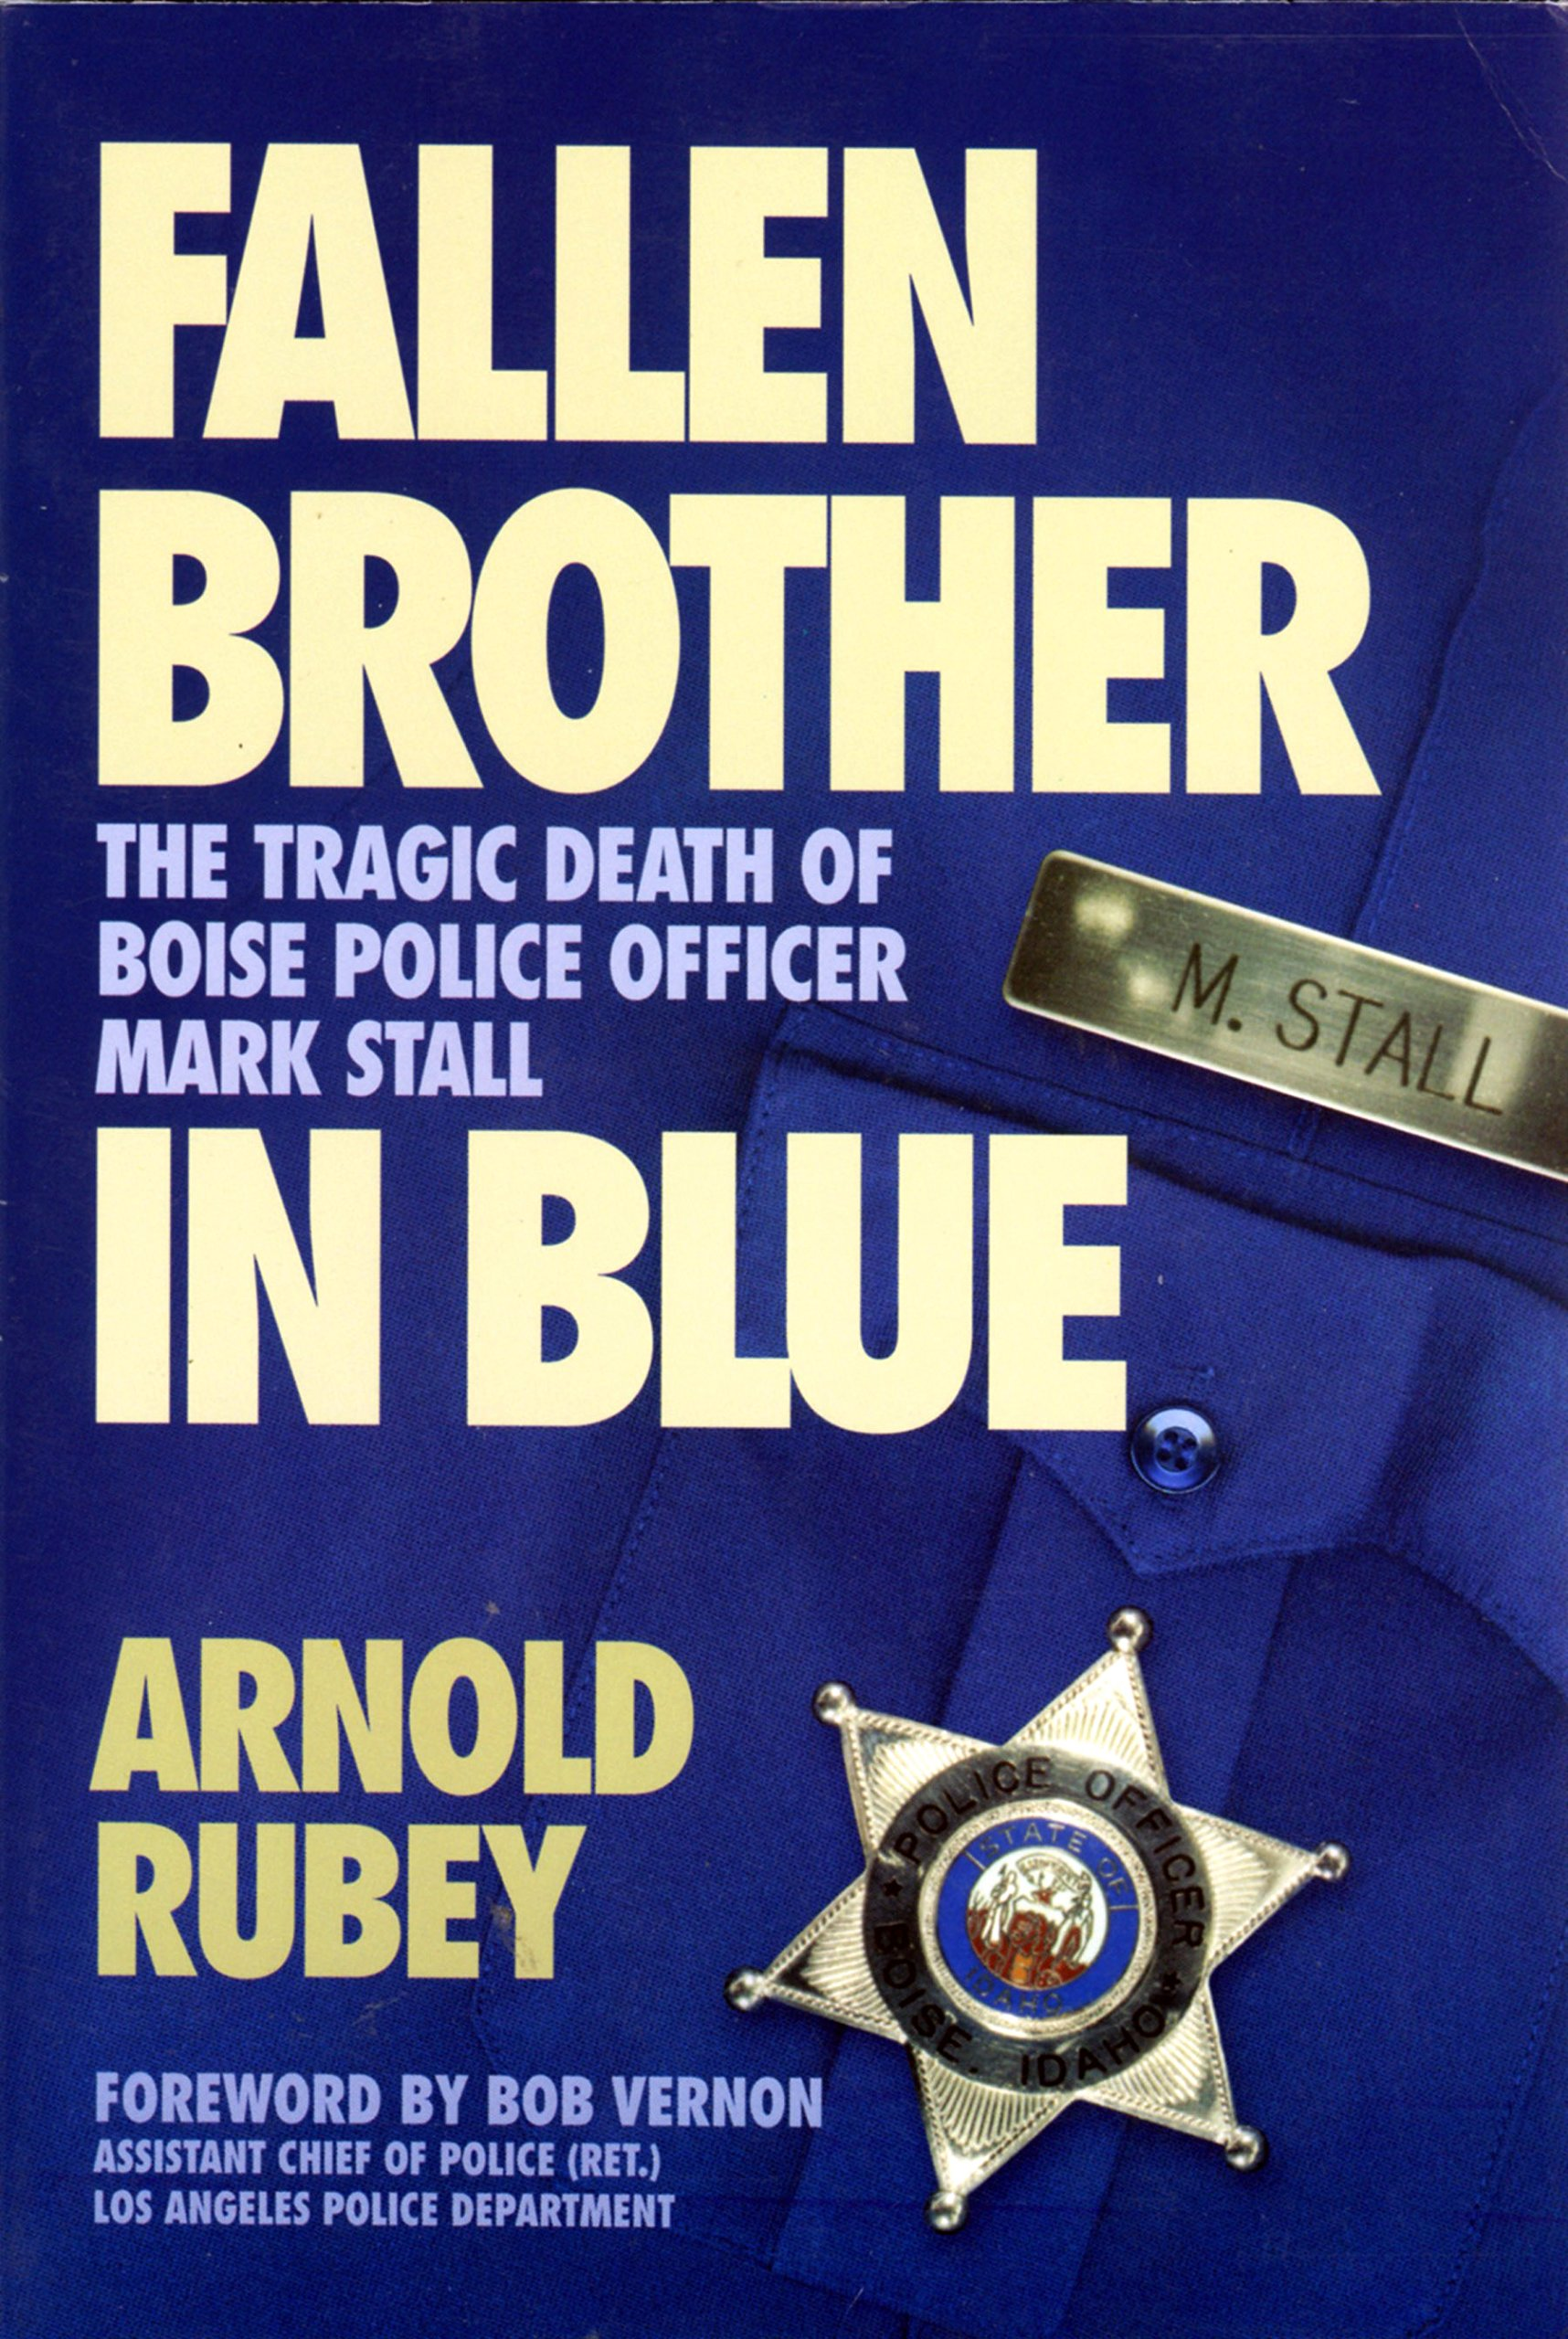 Fallen brother in blue: The tragic death of Boise police officer Mark Stall pdf epub